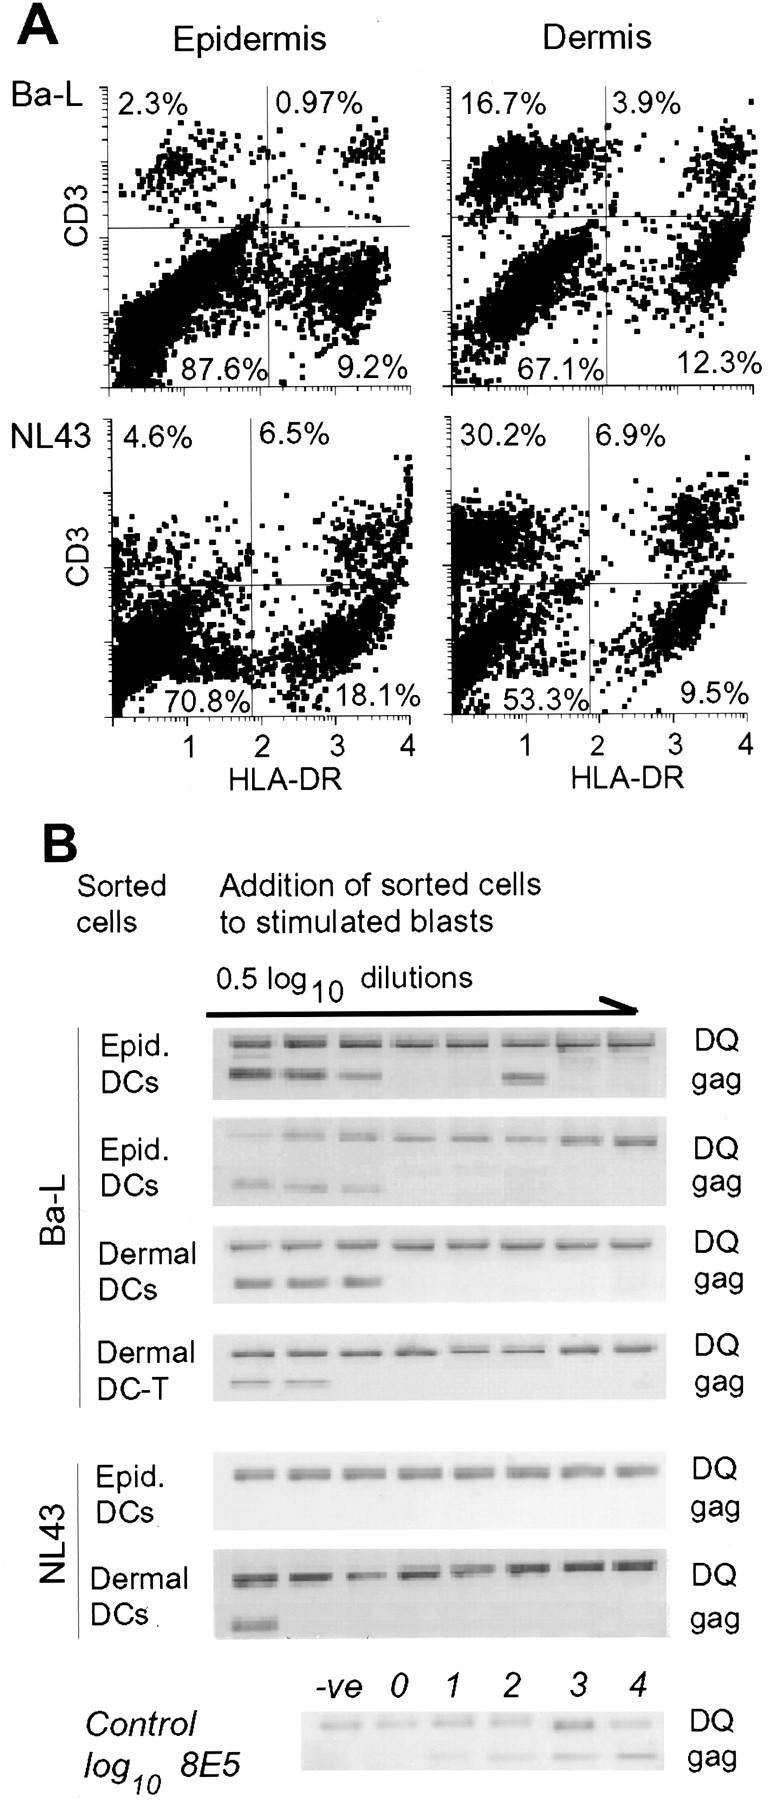 Dendritic cells in the epidermis select for macrophage tropic virus. Abraded skin explants were pulsed with 1,000 TCID 50 /ml (∼5,000 TCID 50 ) of HIV-1 Ba-L by adding virus to the medium overnight at 37°C. After dispase treatment, epidermal and dermal sheets were floated in medium for 3 d. Migrating cells were treated with collagenase and separated over a step metrizamide gradient, stained with FITC–HLA-DR and PE-CD3, and sorted for DCs using a cell sorter. ( A ) As previously shown ( 17 – 19 ), cells migrating from the dermis contained DCs, T cells, and DC–T cell conjugates, whereas cells from the epidermis contained DCs and DC–T cell conjugates, but few CD3 + cells. ( B ) Sorted cells were analyzed for their ability to transmit infection by diluting into coculture with T cells. Half log 10 dilutions of the sorted emigrant cells (10 4 ) were performed in 96-well plates with SEB-stimulated PBLs (10 5 /well) in medium containing 5% IL-2. Virus replication in cocultures was assessed by lysing cocultures on day 10 and analyzing for gag sequences using PCR. At the highest cell concentration, the PCR reactions contained the equivalent of 2,500 sorted cells. Duplicate dilution series for DCs sorted from epidermal emigrants and DCs, and DC–T cell conjugates from dermal emigrants from Ba-L exposed skin are shown. Dilution series for DCs sorted from epidermis and dermis of NL43 exposed skin are shown in the lower two panels.